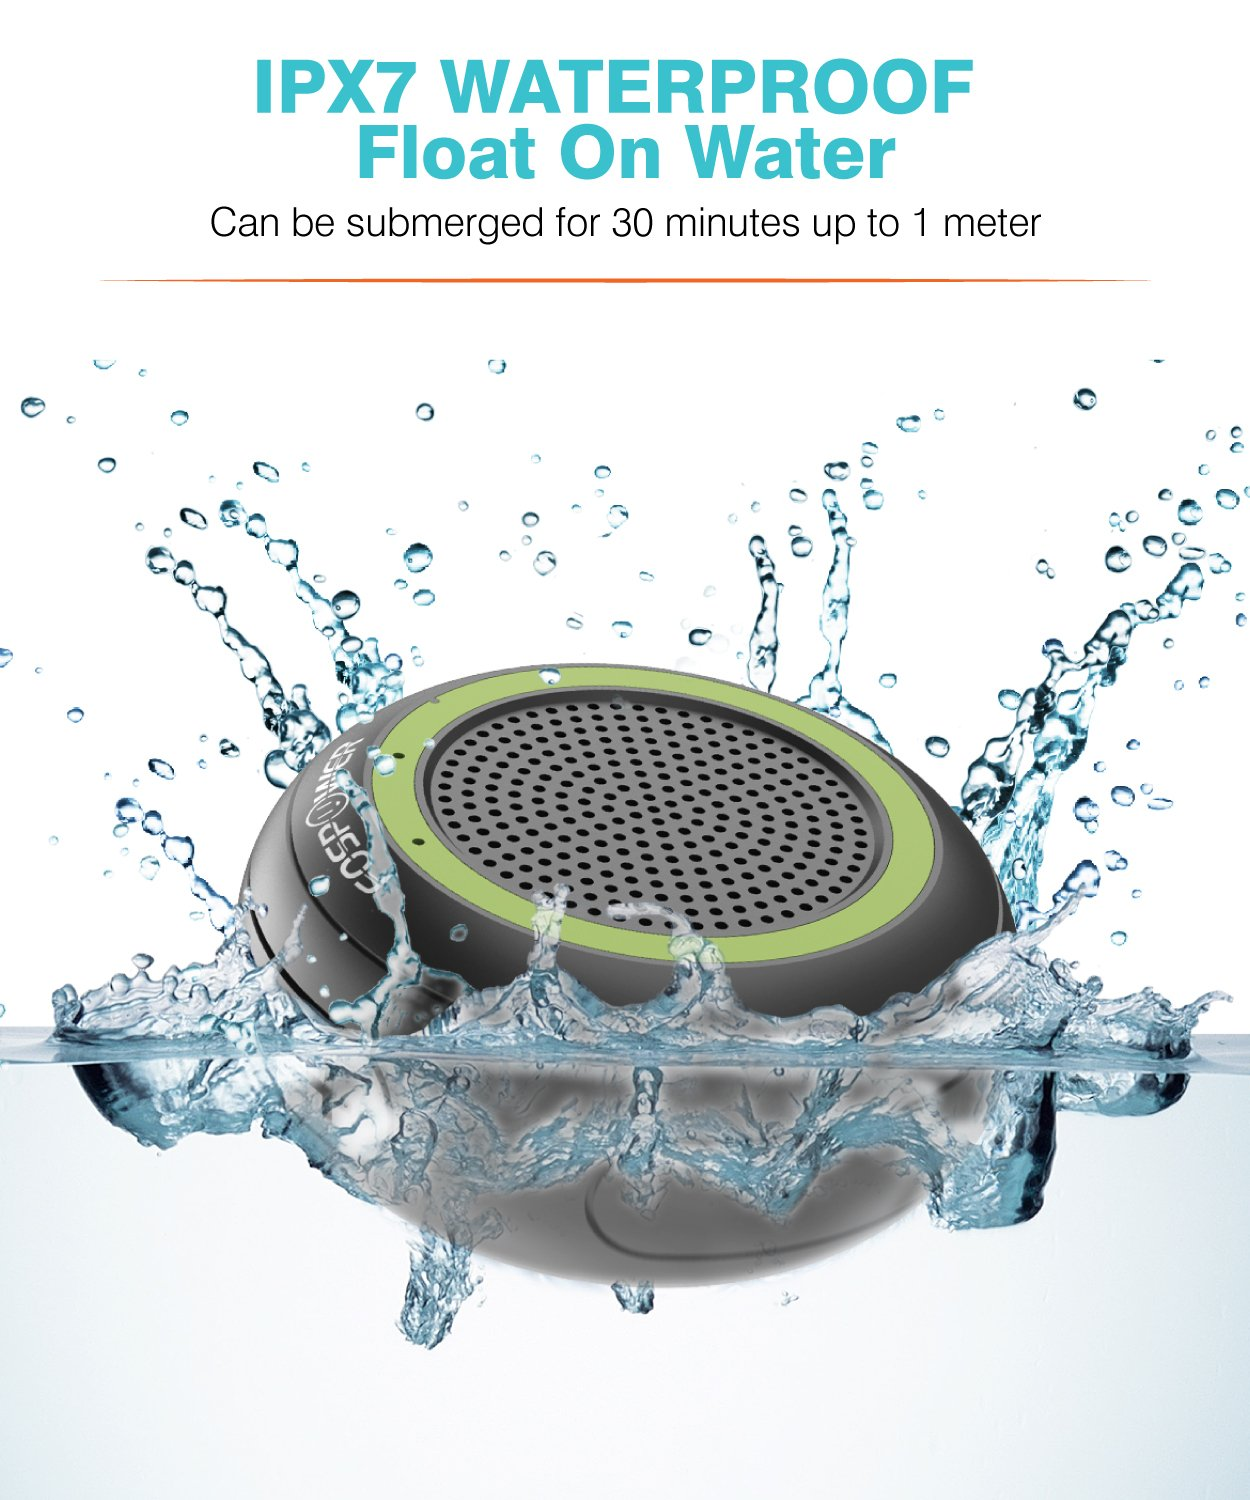 HD Audio Supports TF//SD Card and TWS Mode Enhanced Bass FosPower IPX7 Waterproof Bluetooth Speaker Portable 4.2 Wireless Speakers with Built-in Mic and 10 Hours Playtime